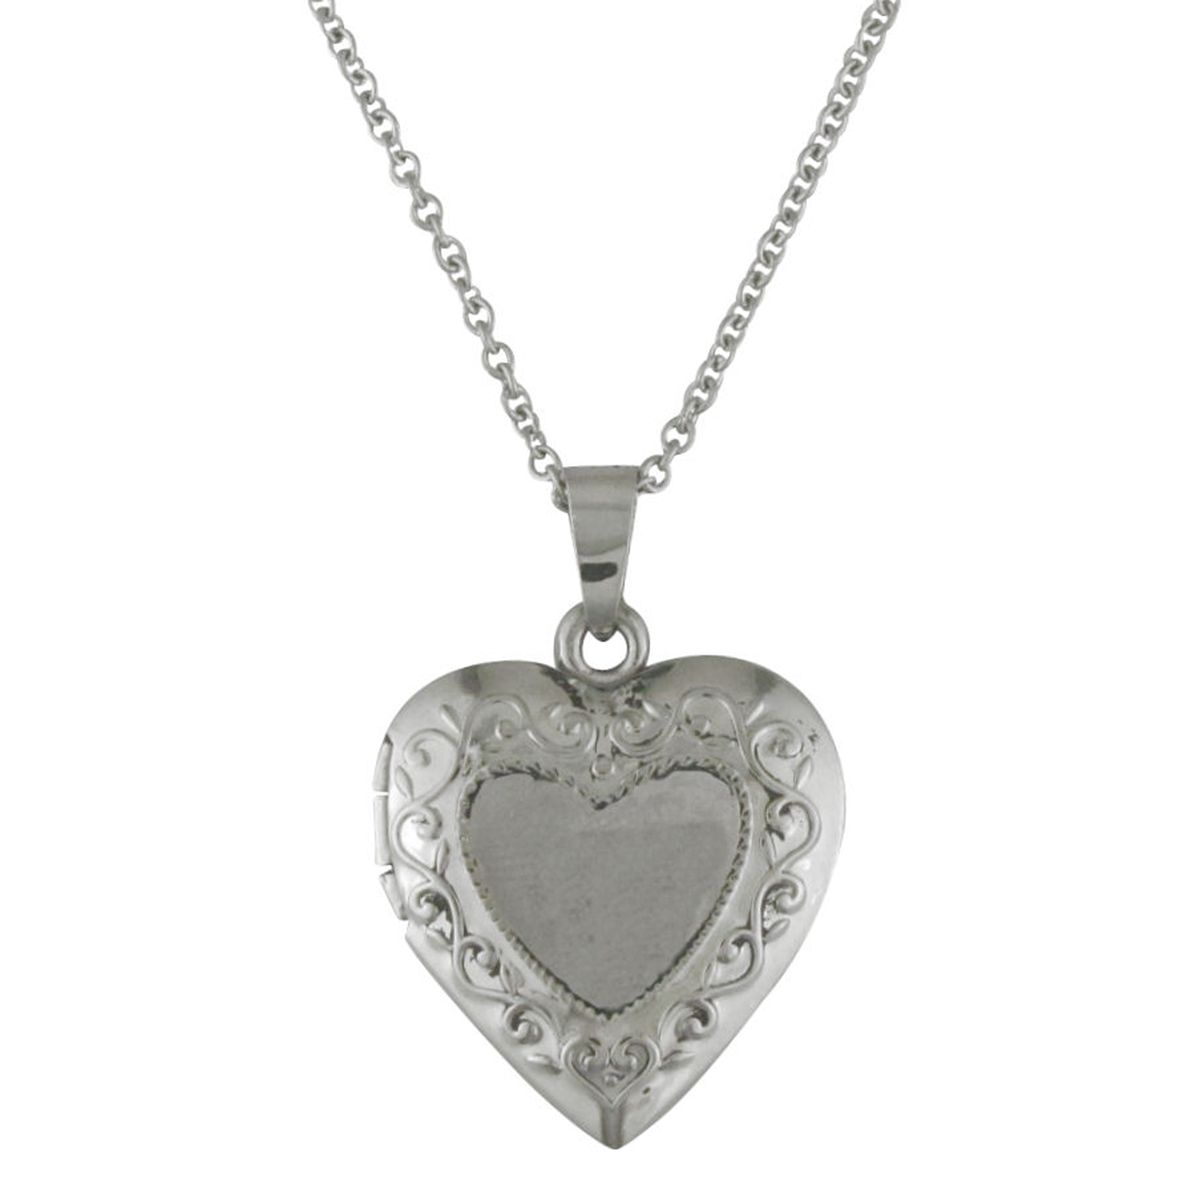 Stainless Steel Locket Pendant and Chain